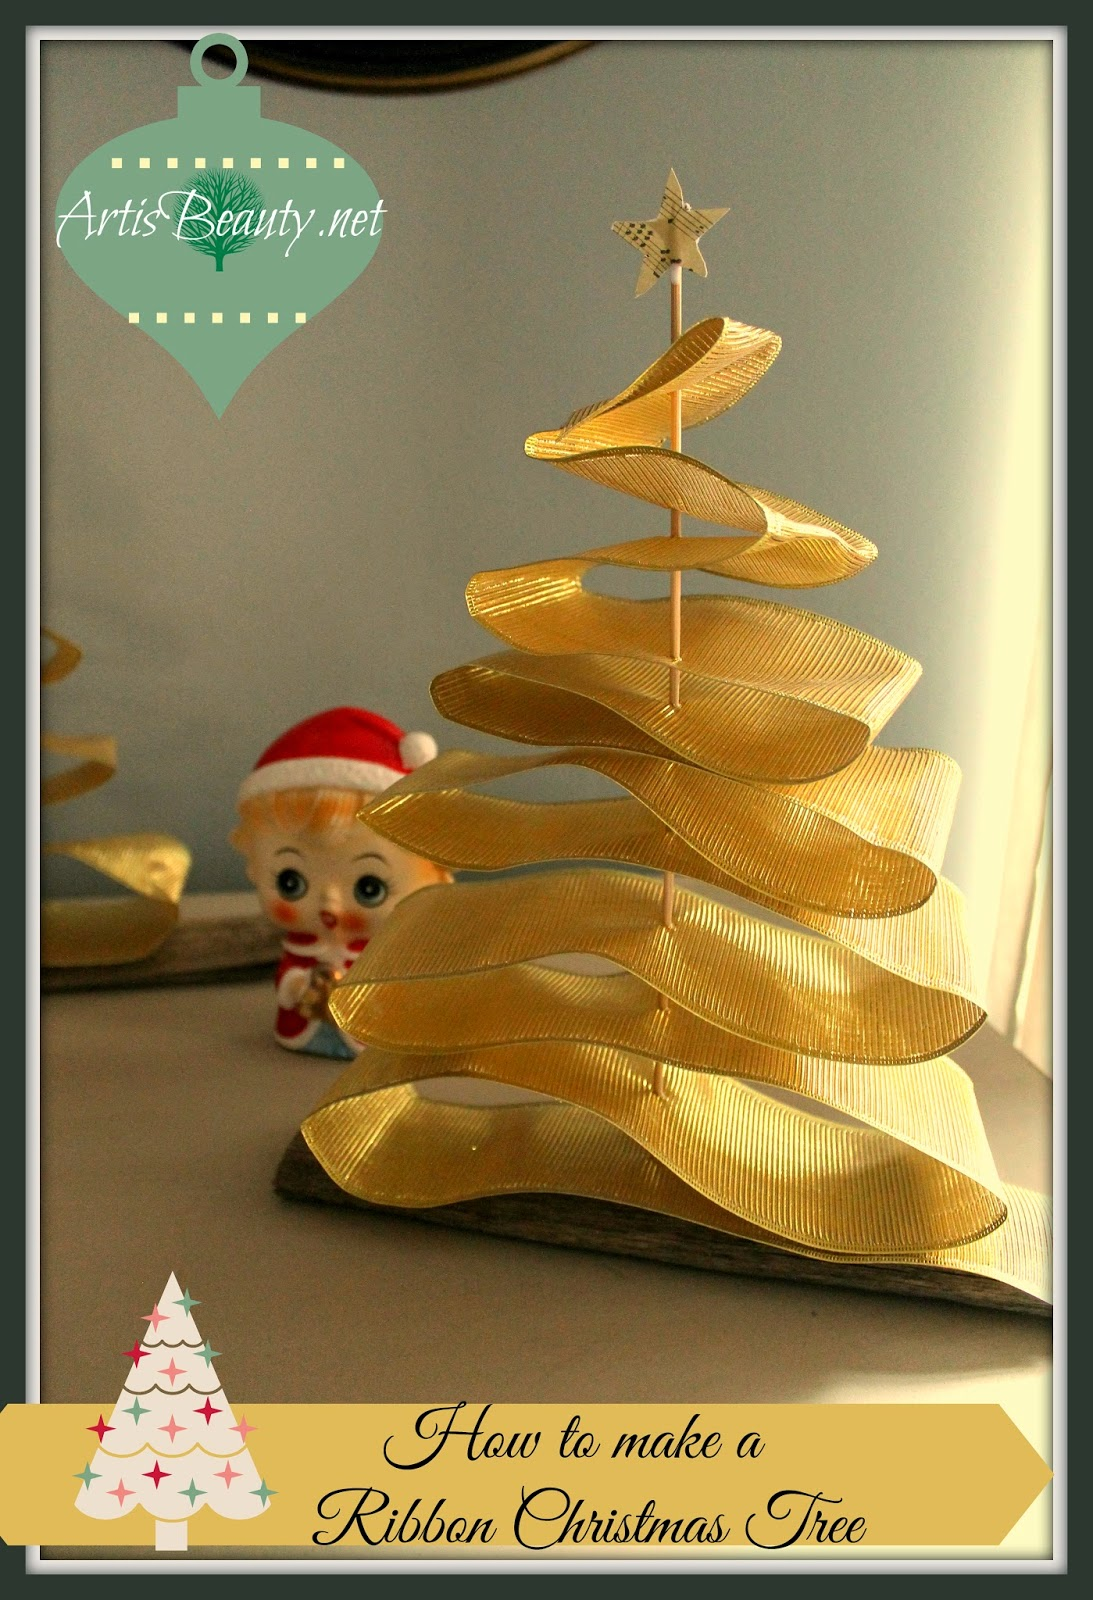 art is beauty how to make a ribbon christmas tree. Black Bedroom Furniture Sets. Home Design Ideas